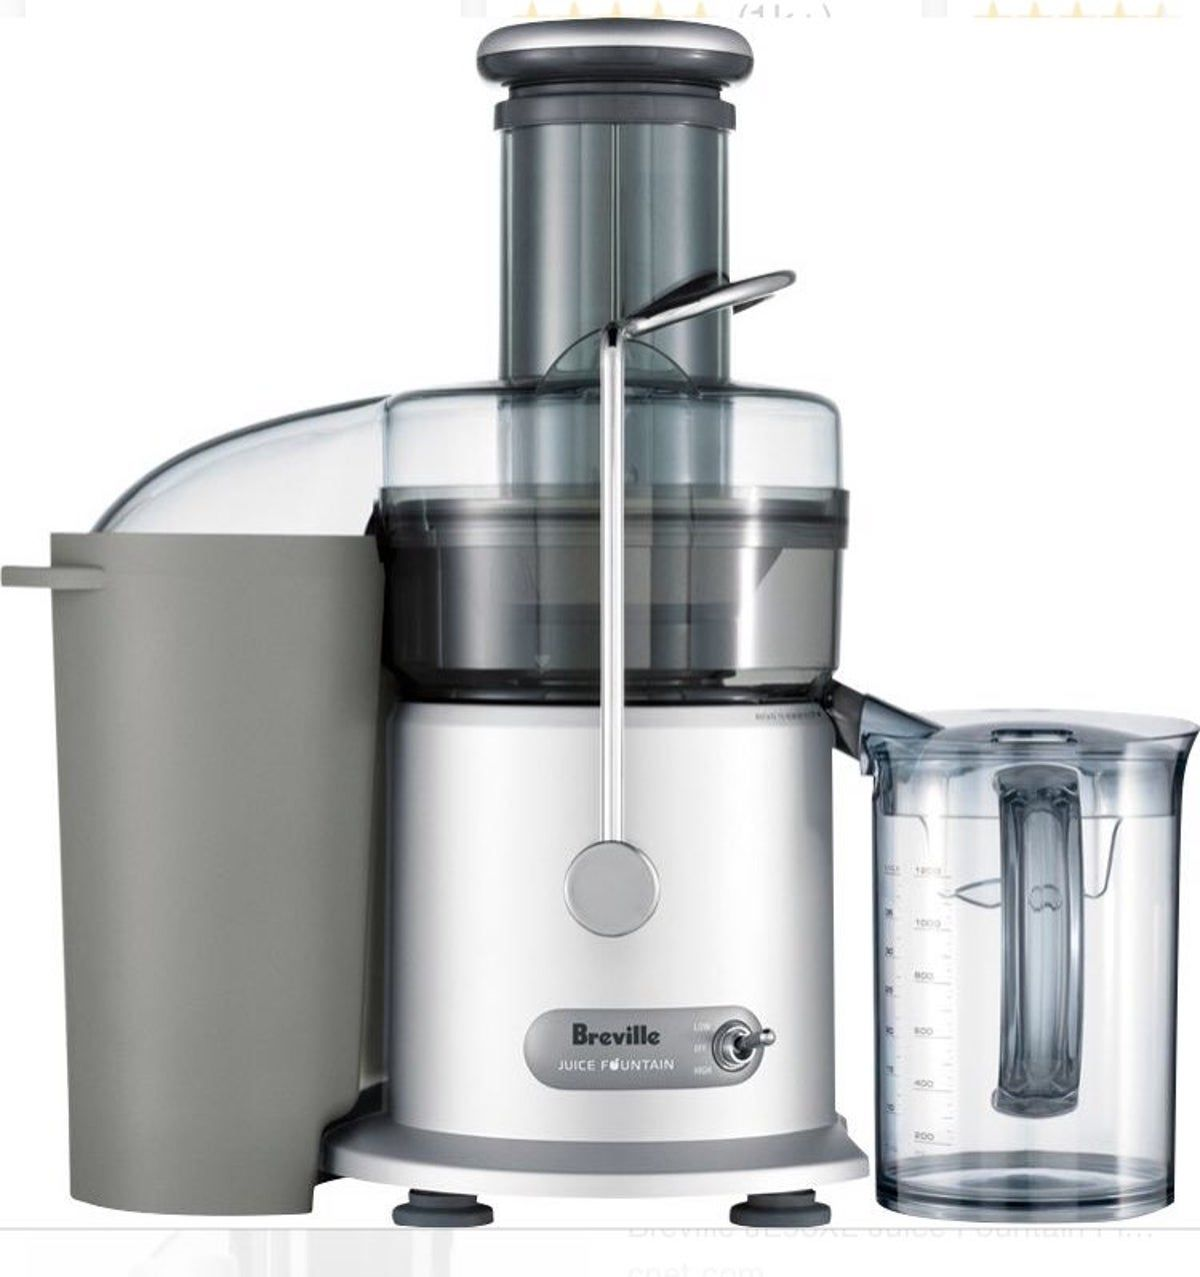 Breville Fountain Juicer #juicefast